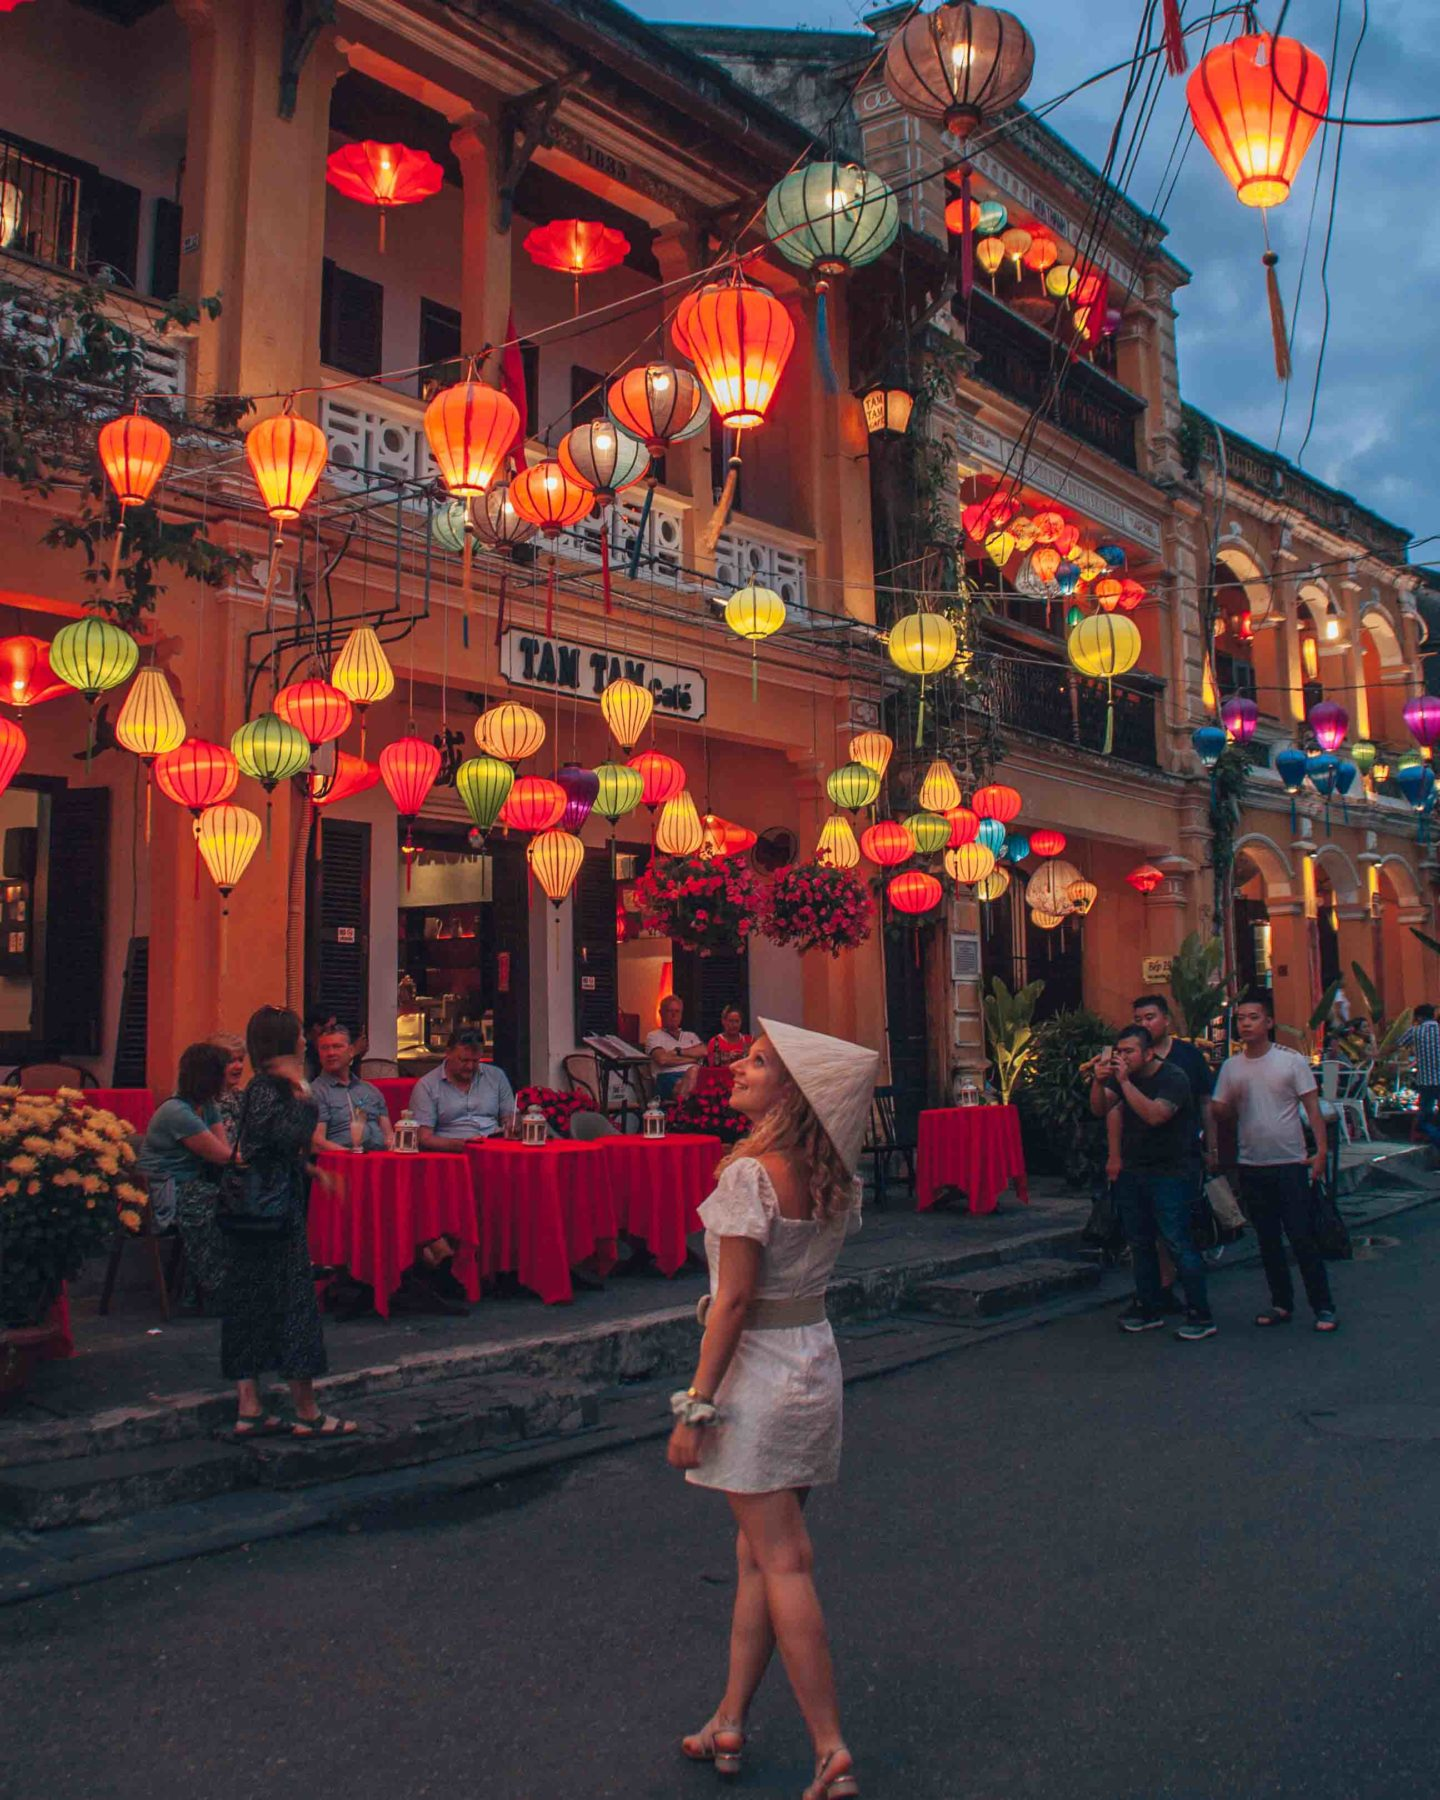 Hoi An Ancient Town illuminated with lanterns by night